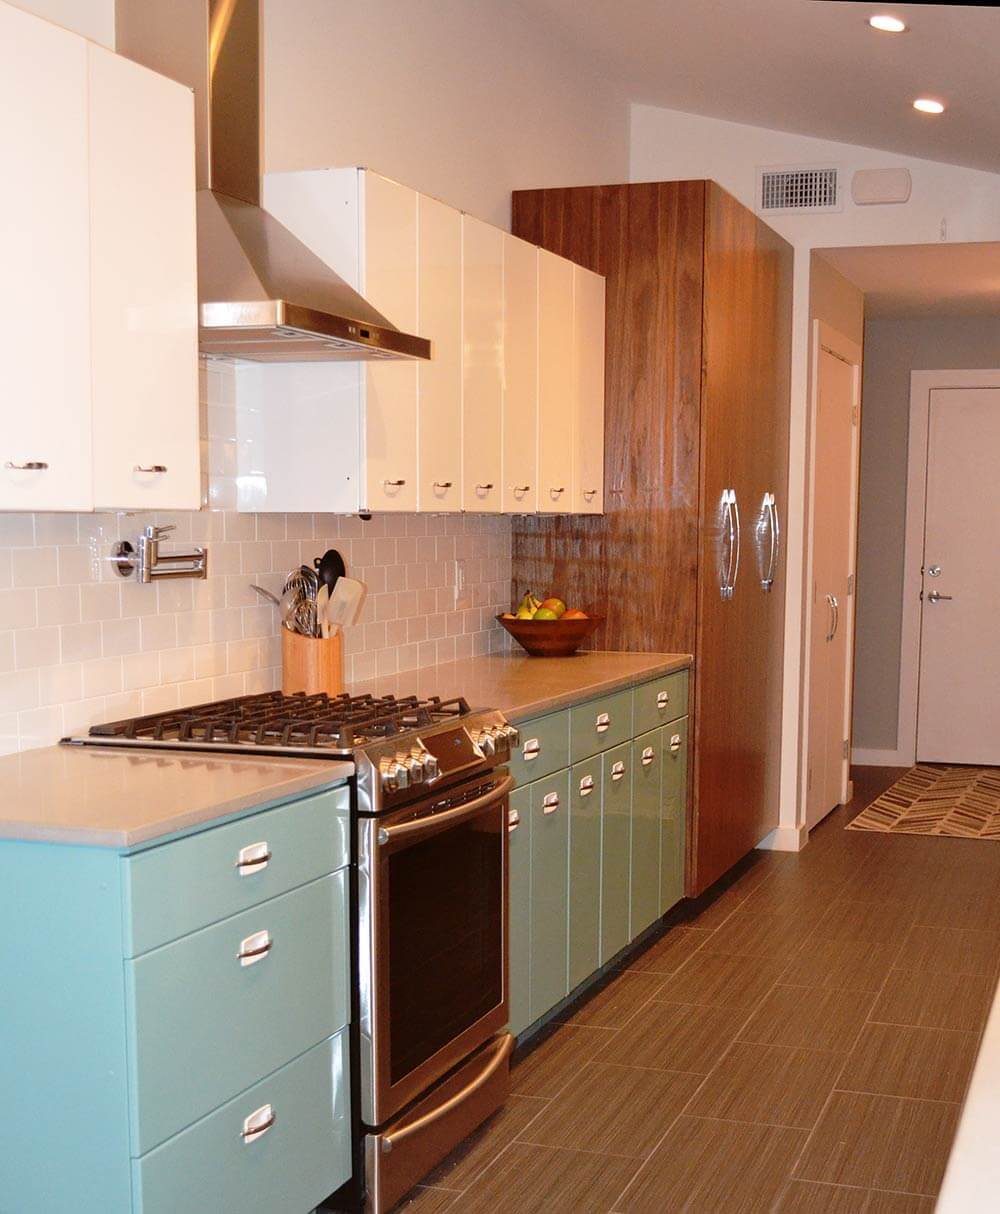 Kitchen Cabinets Renovation sam has a great experience with powder coating her vintage steel